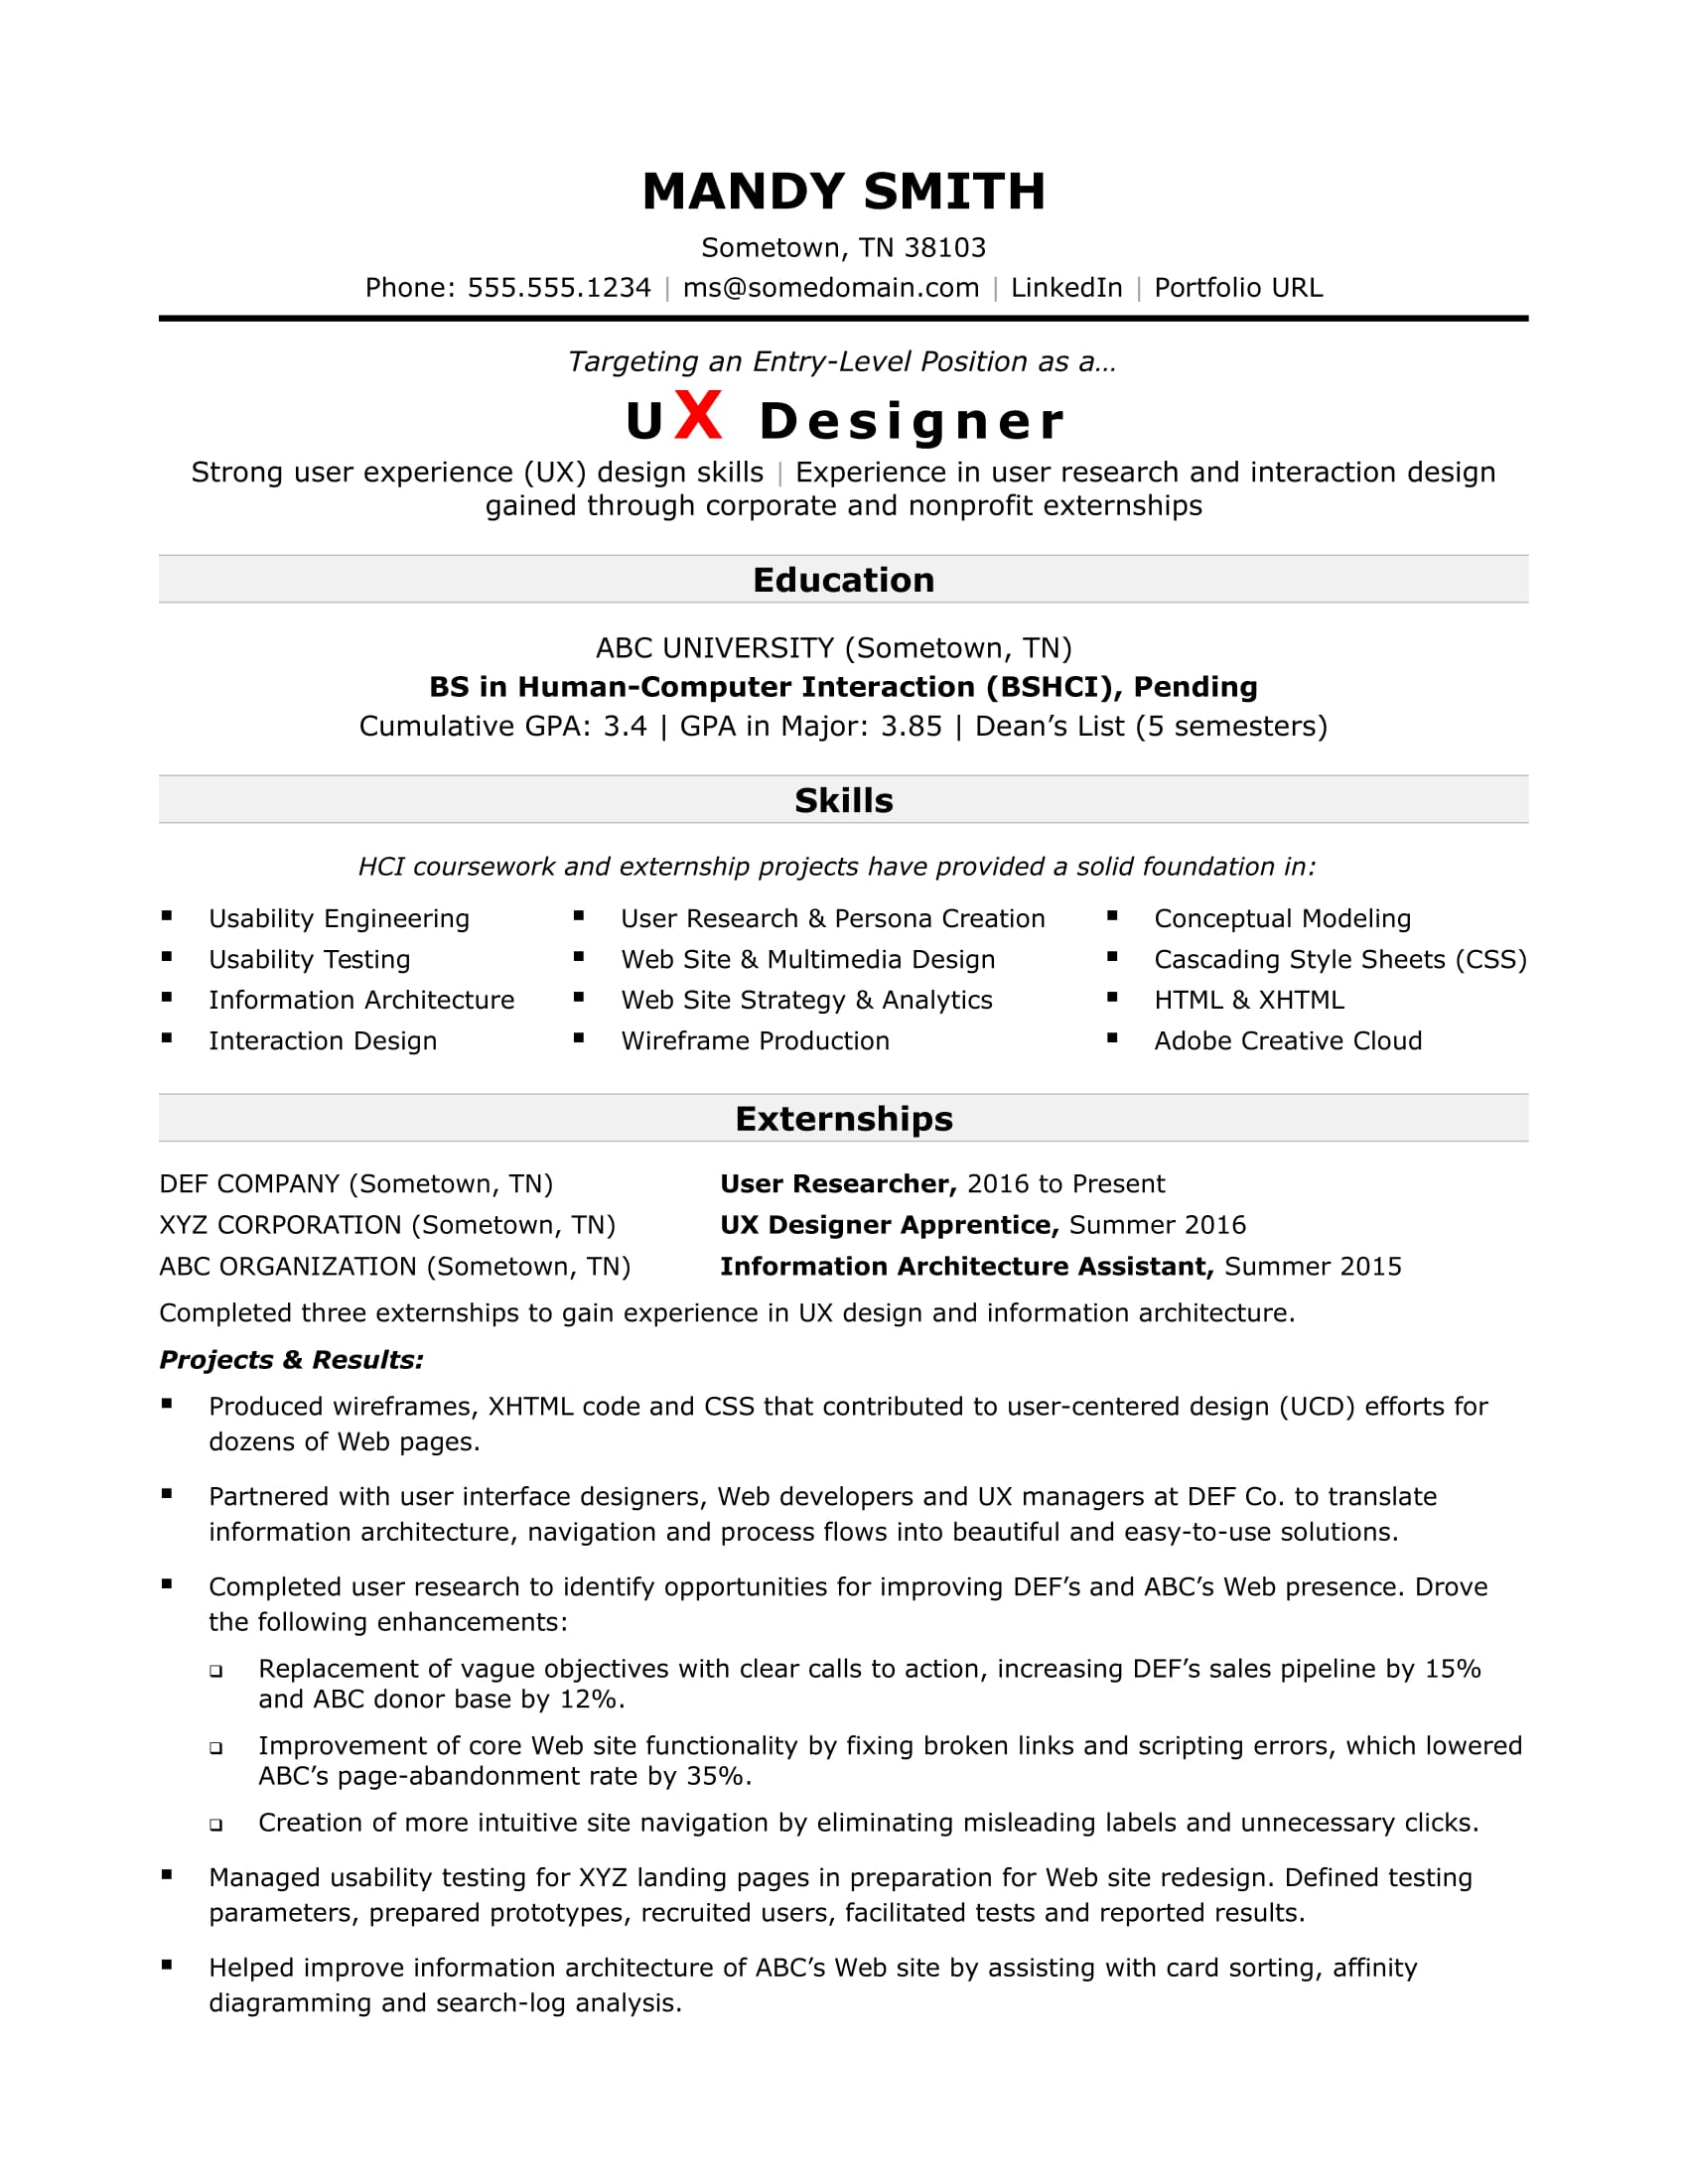 How To Build A Good Resume | Sample Resume For An Entry Level Ux Designer Monster Com